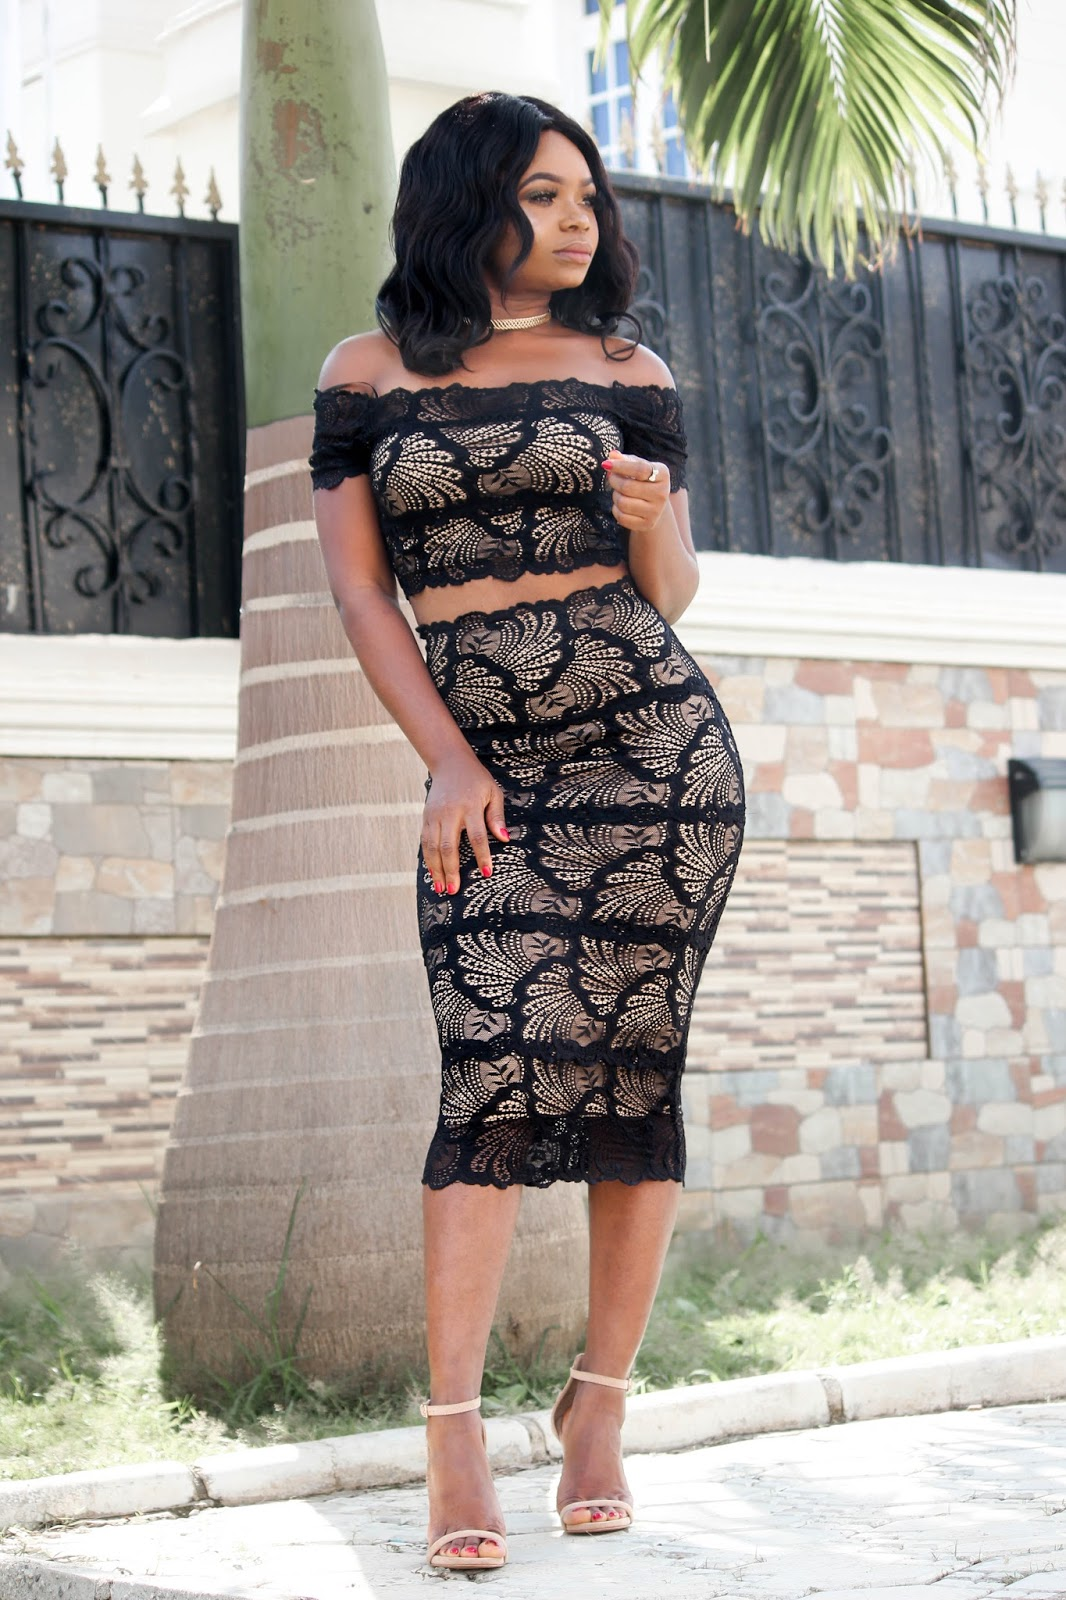 NUDE ILLUSION - Hotmiamistyles Black Lace Nude Illusion Off Shoulder Two Piece Set